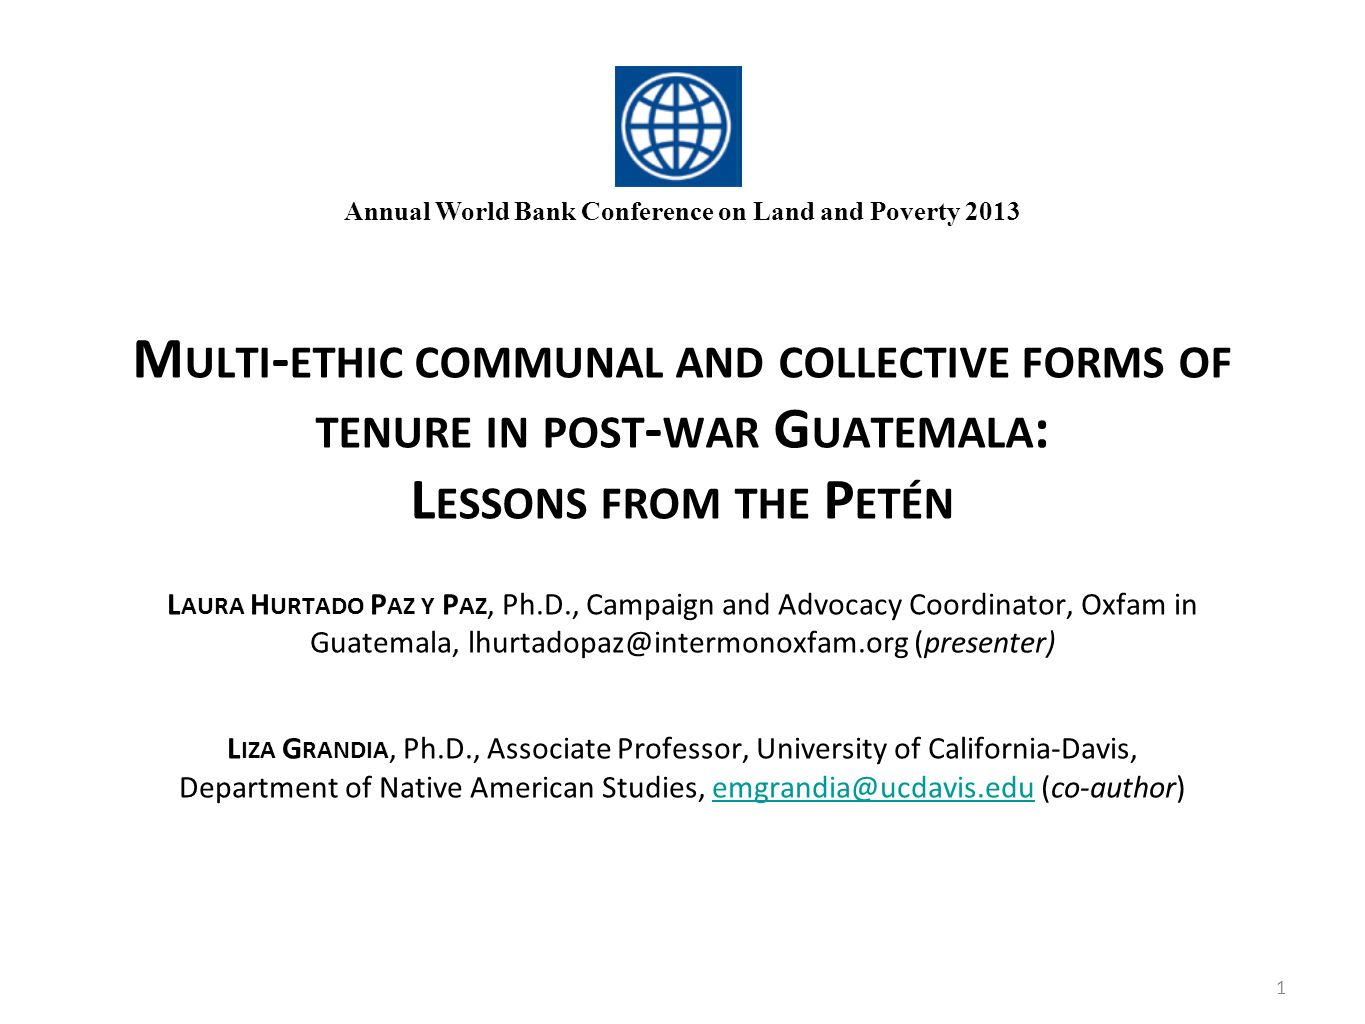 M ULTI - ETHIC COMMUNAL AND COLLECTIVE FORMS OF TENURE IN POST - WAR G UATEMALA : L ESSONS FROM THE P ETÉN L AURA H URTADO P AZ Y P AZ, Ph.D., Campaig